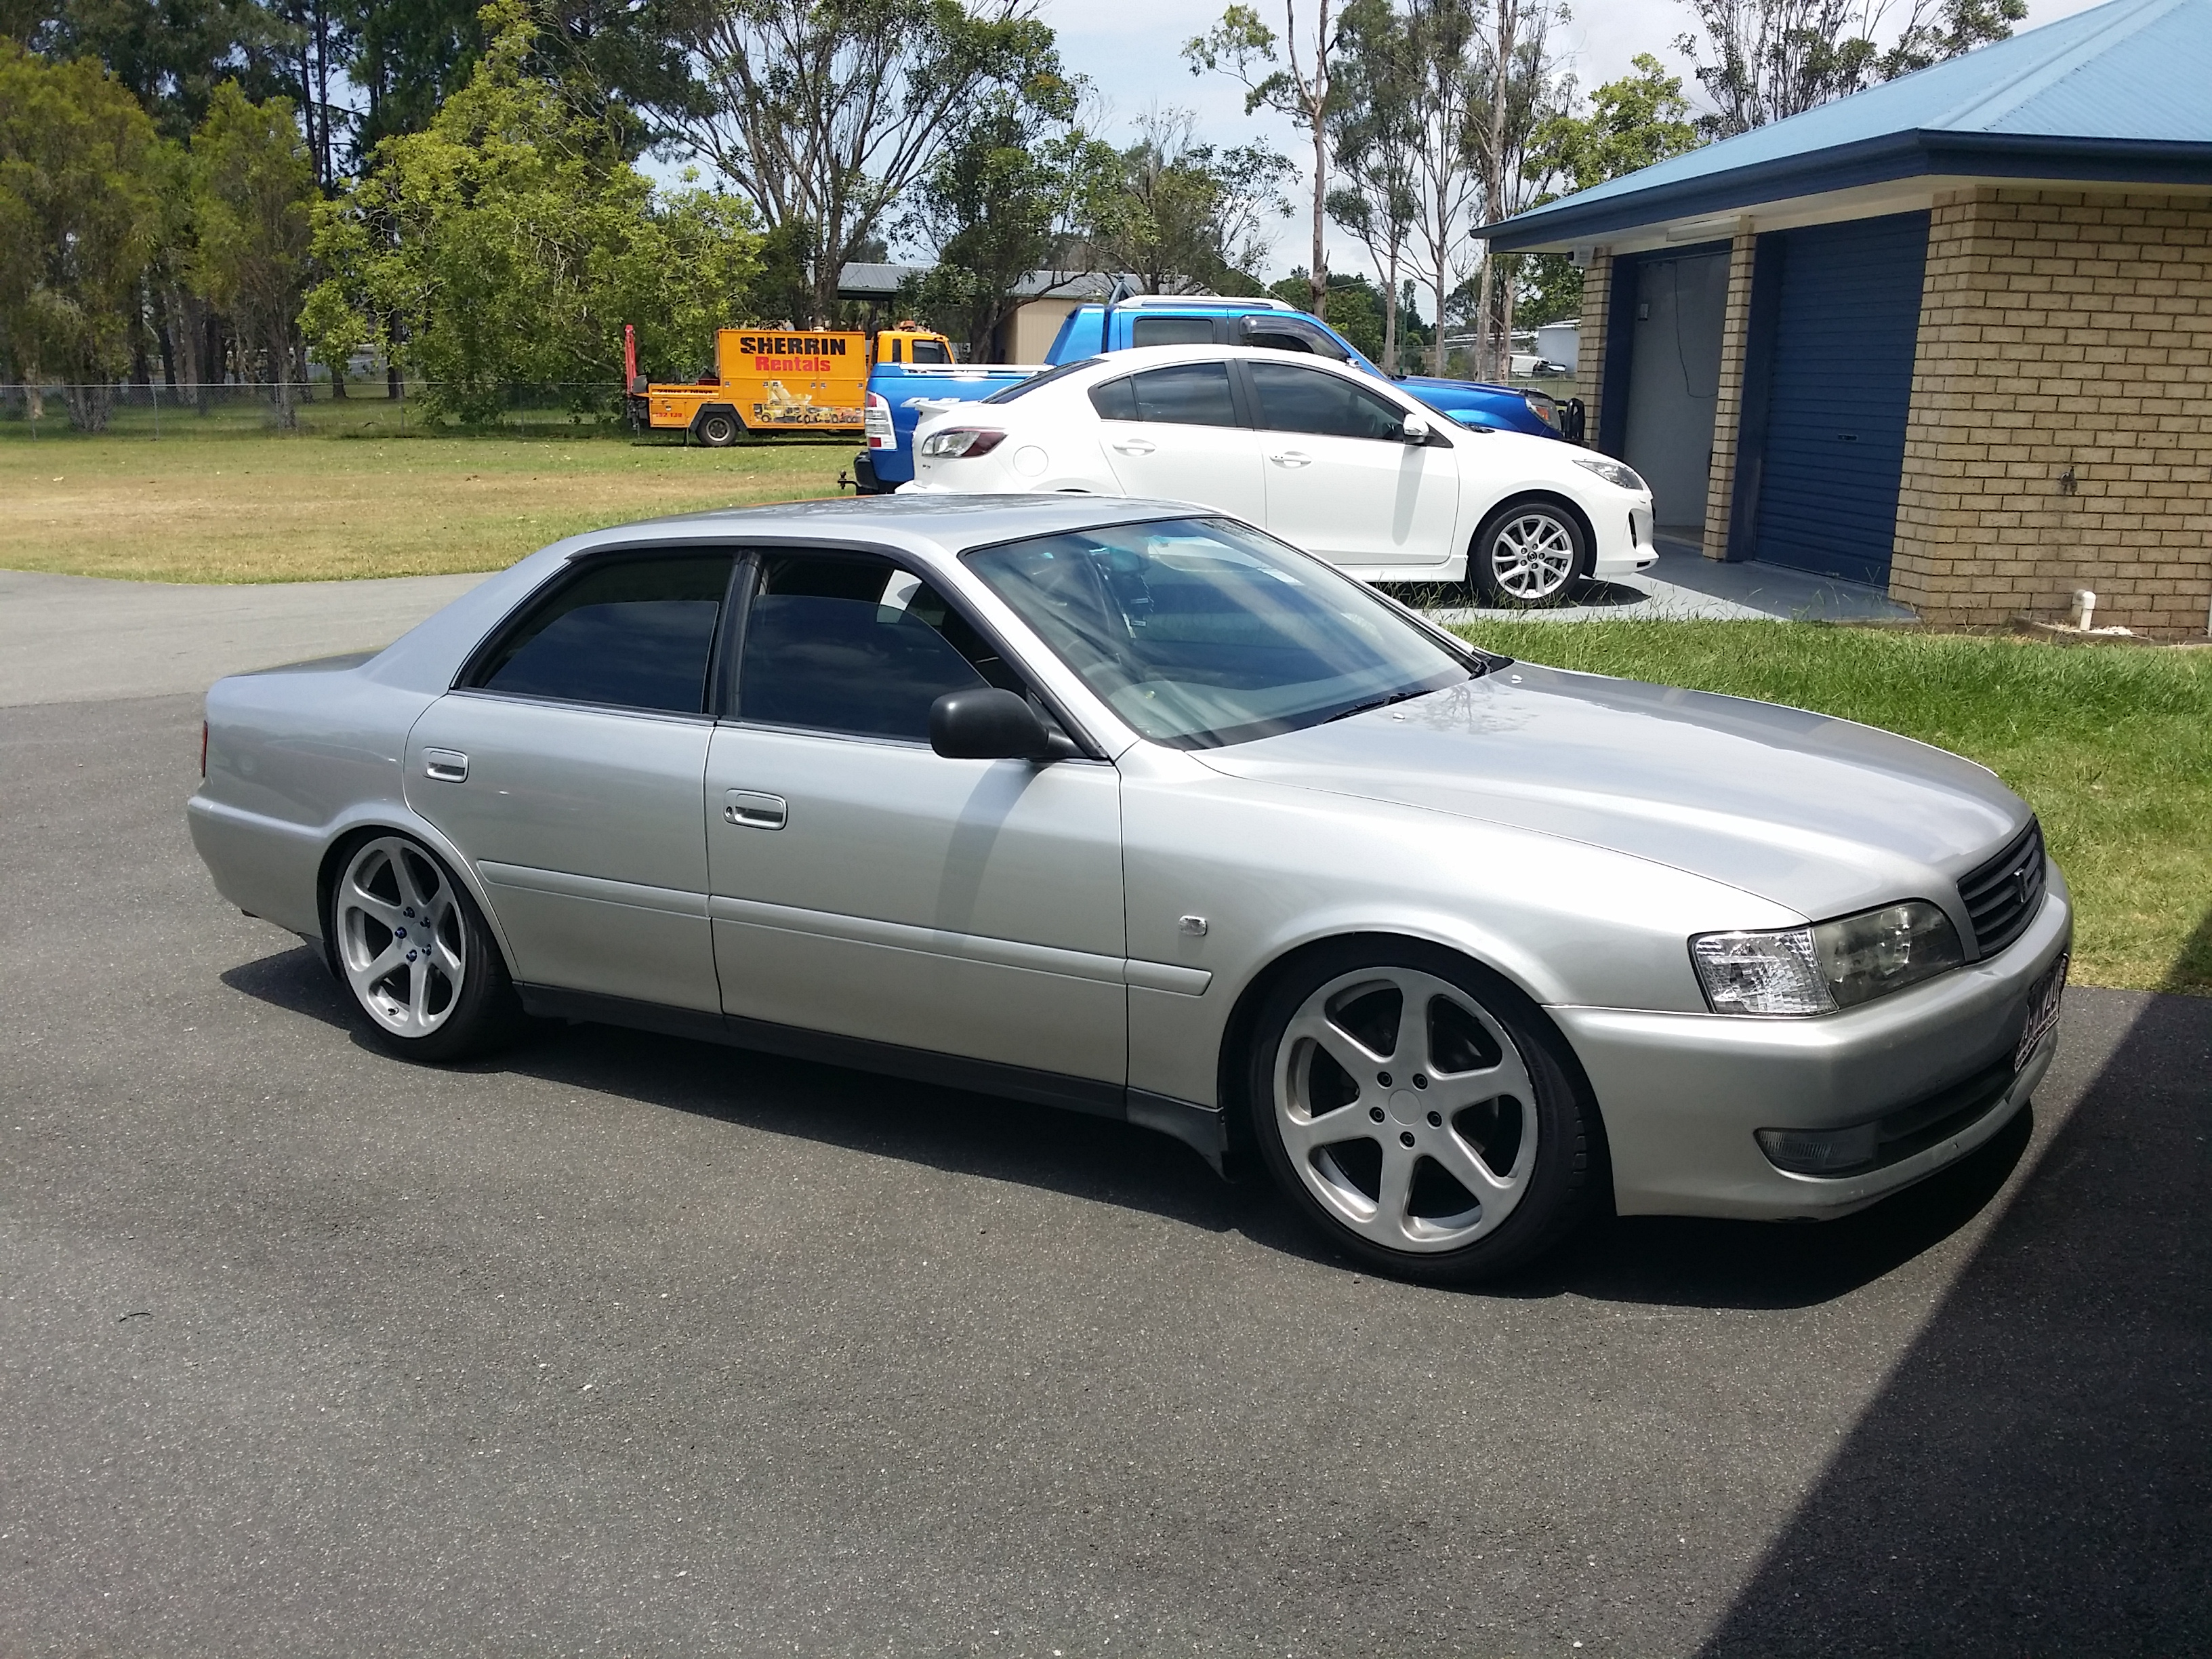 Toyota Camry 2001 Grande >> 1998 Toyota Chaser 3.0 Avante G related infomation,specifications - WeiLi Automotive Network